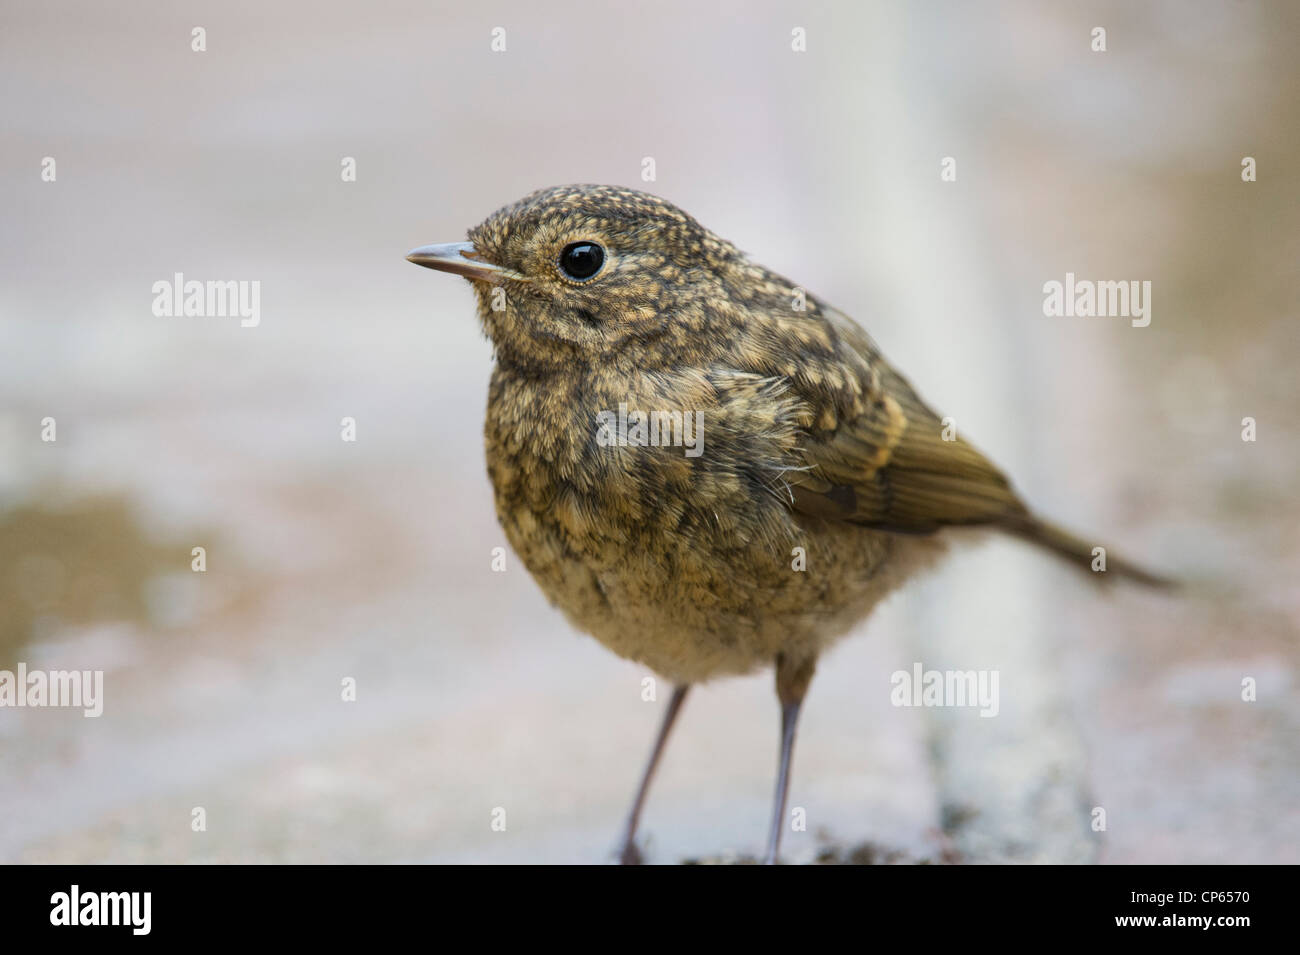 Fledged juvenile Robin on garden path. UK - Stock Image